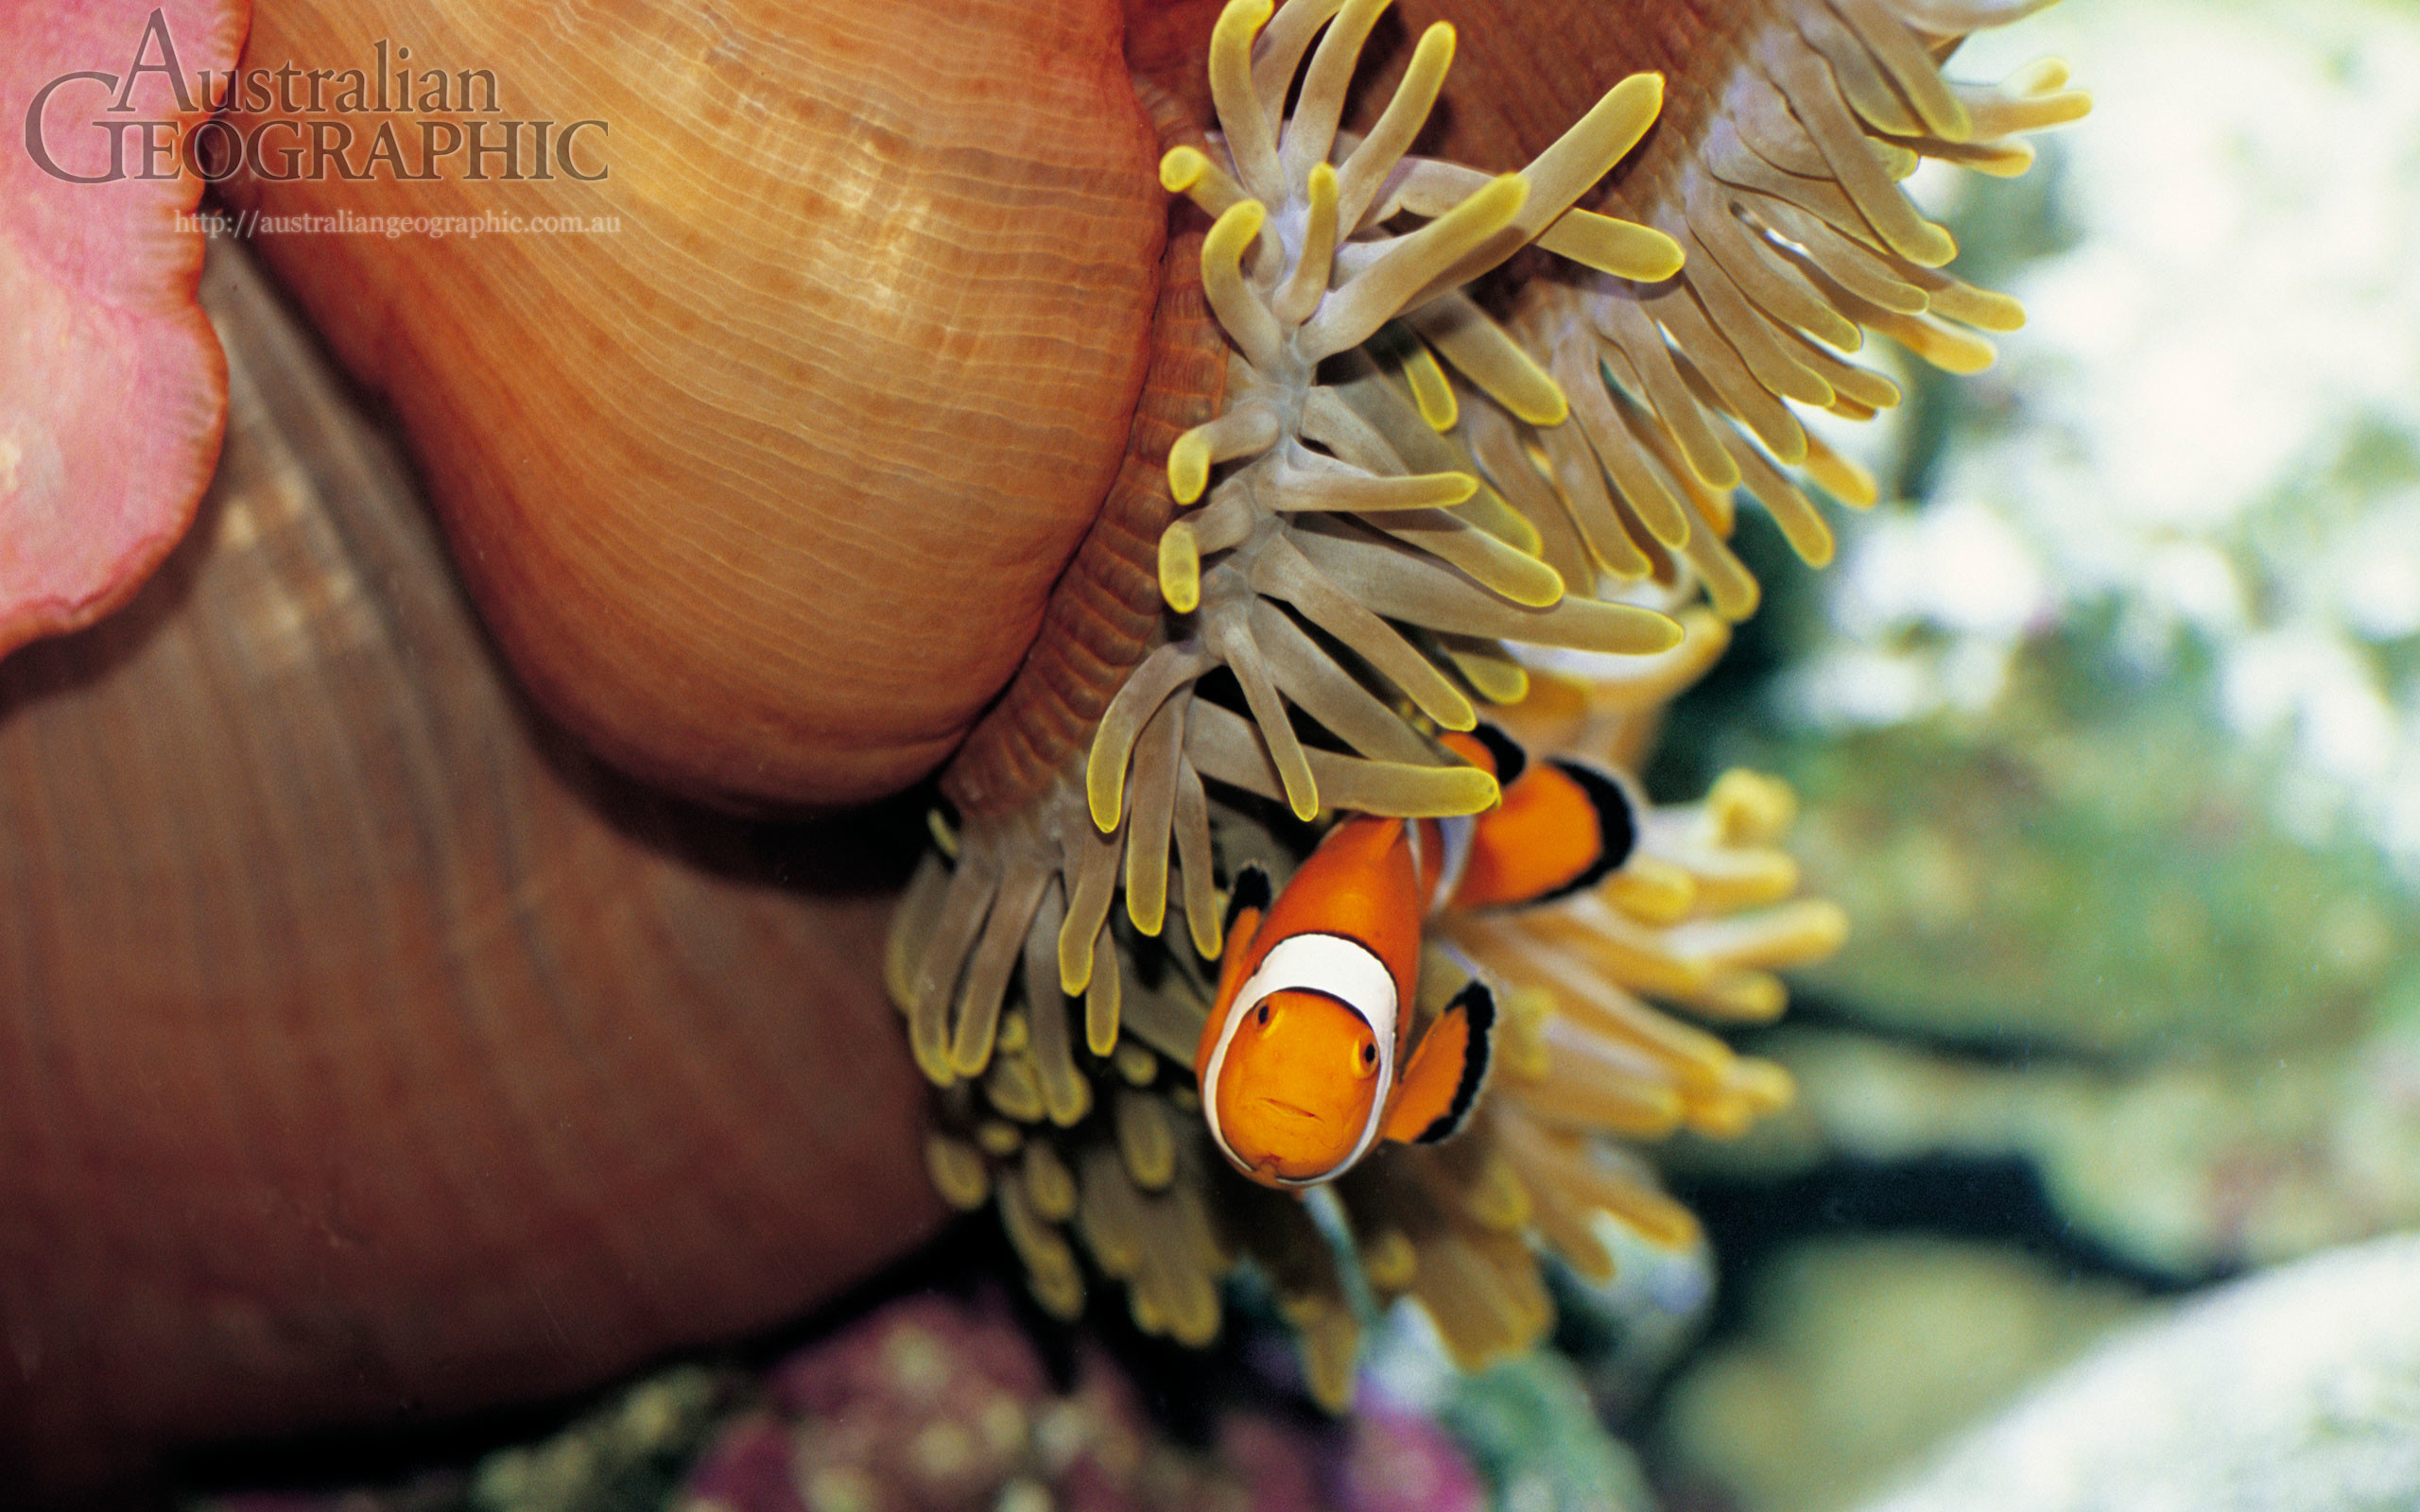 2560x1600 Wallpapers. Images of Australia: Clown fish, Great Barrier Reef, Queensland